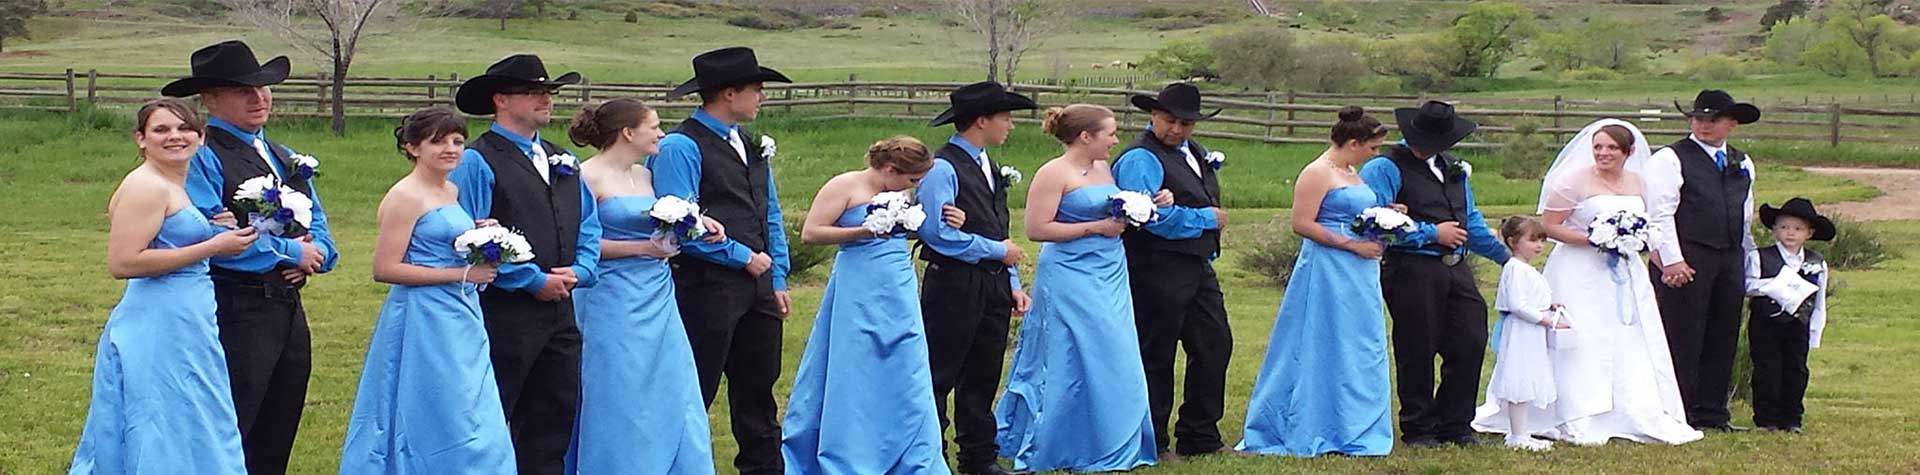 Dude Ranch Weddings